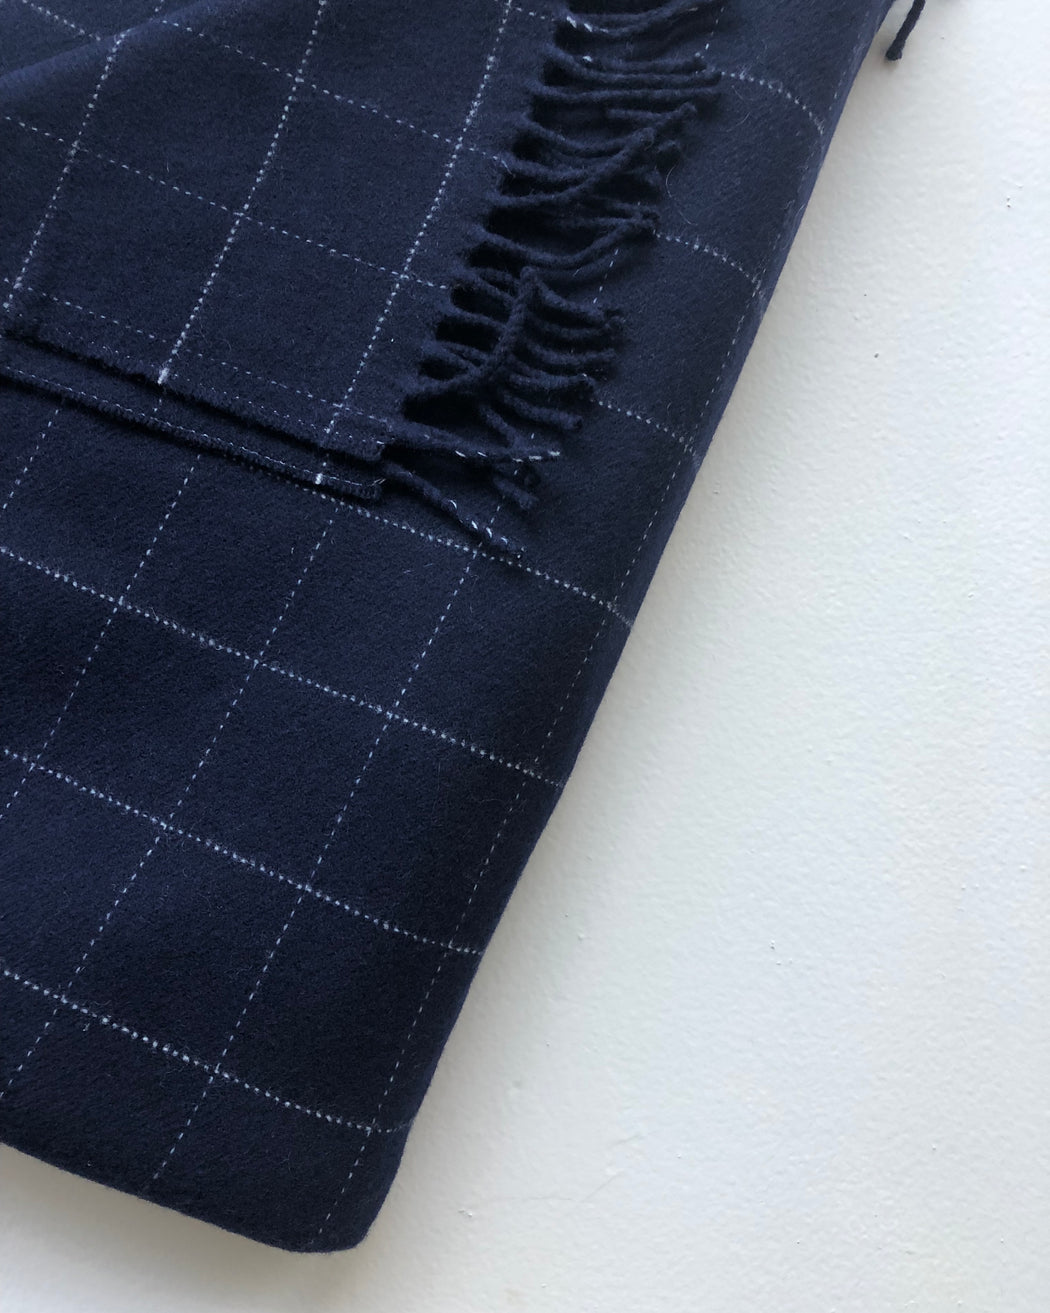 Windowpane Throw - Navy